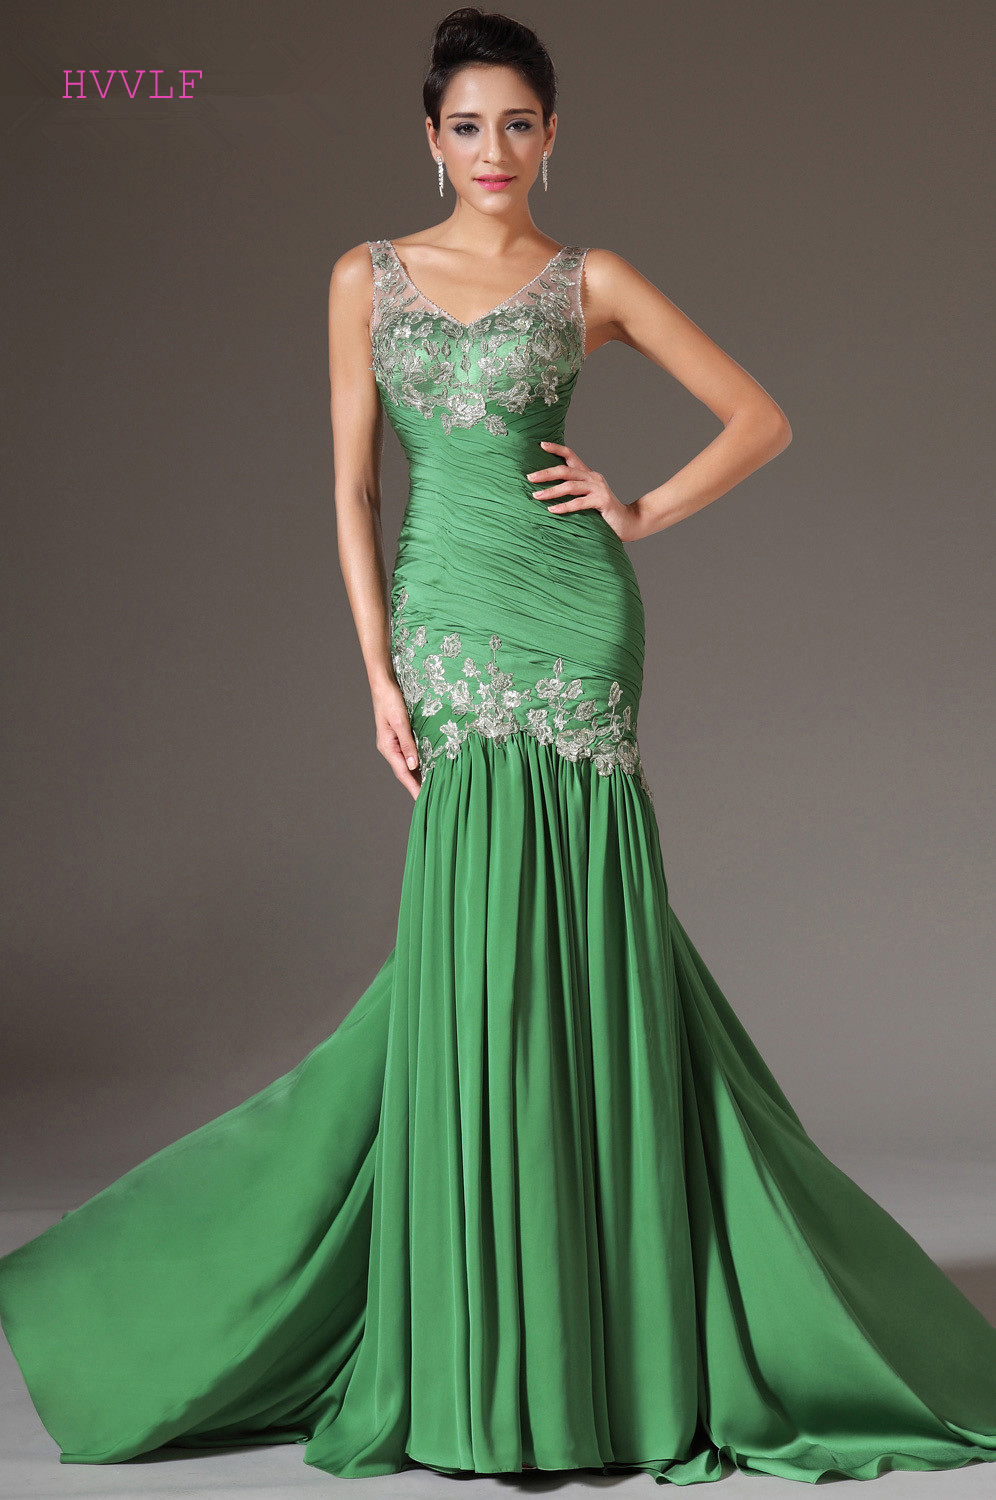 Green   Evening     Dresses   2019 Mermaid V-neck Chiffon Lace Backless Plus Size Long   Evening   Gown Prom   Dresses   Robe De Soiree